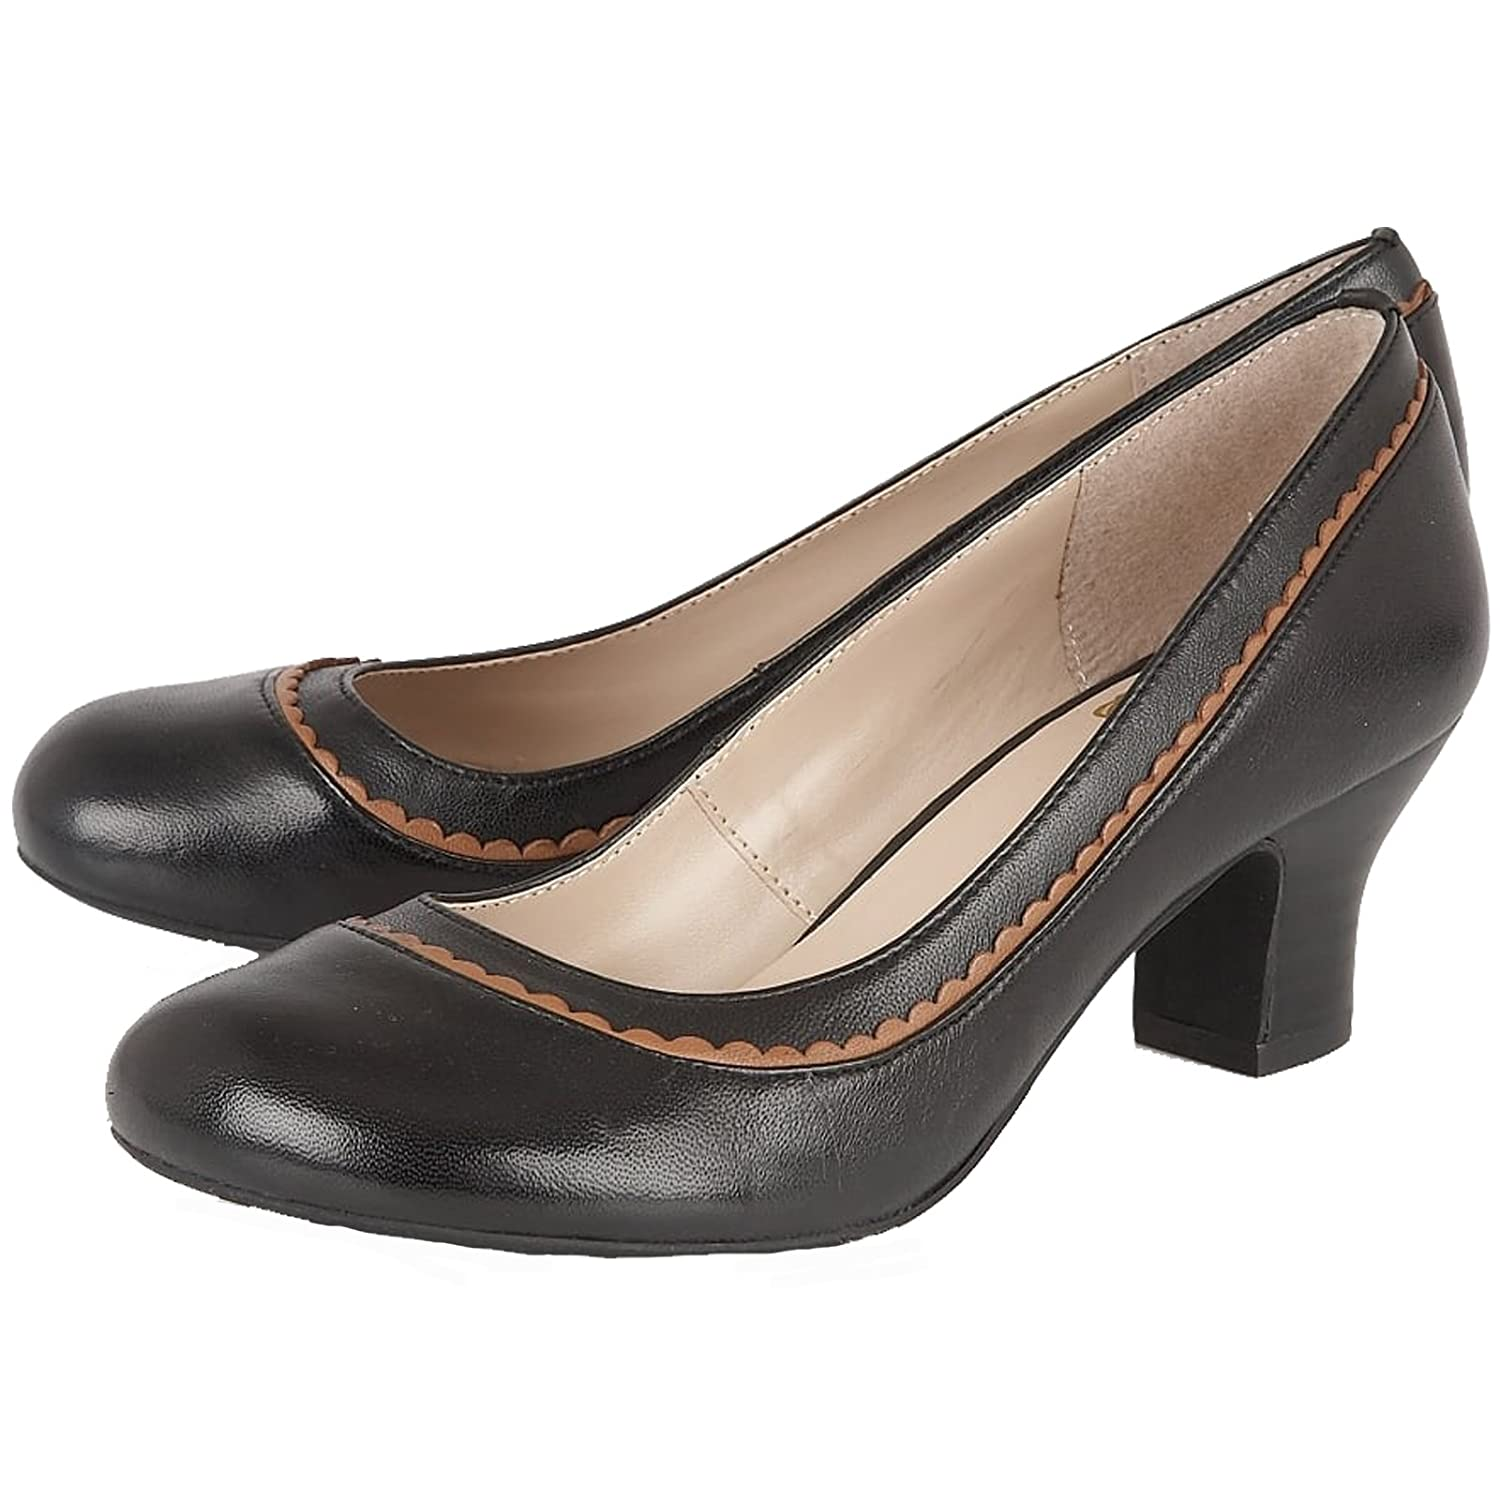 Lotus Ladies Hallmark Orinda schwarz Leather Block Heel Court Court Court schuhe -UK 7 (EU 40) c818cf